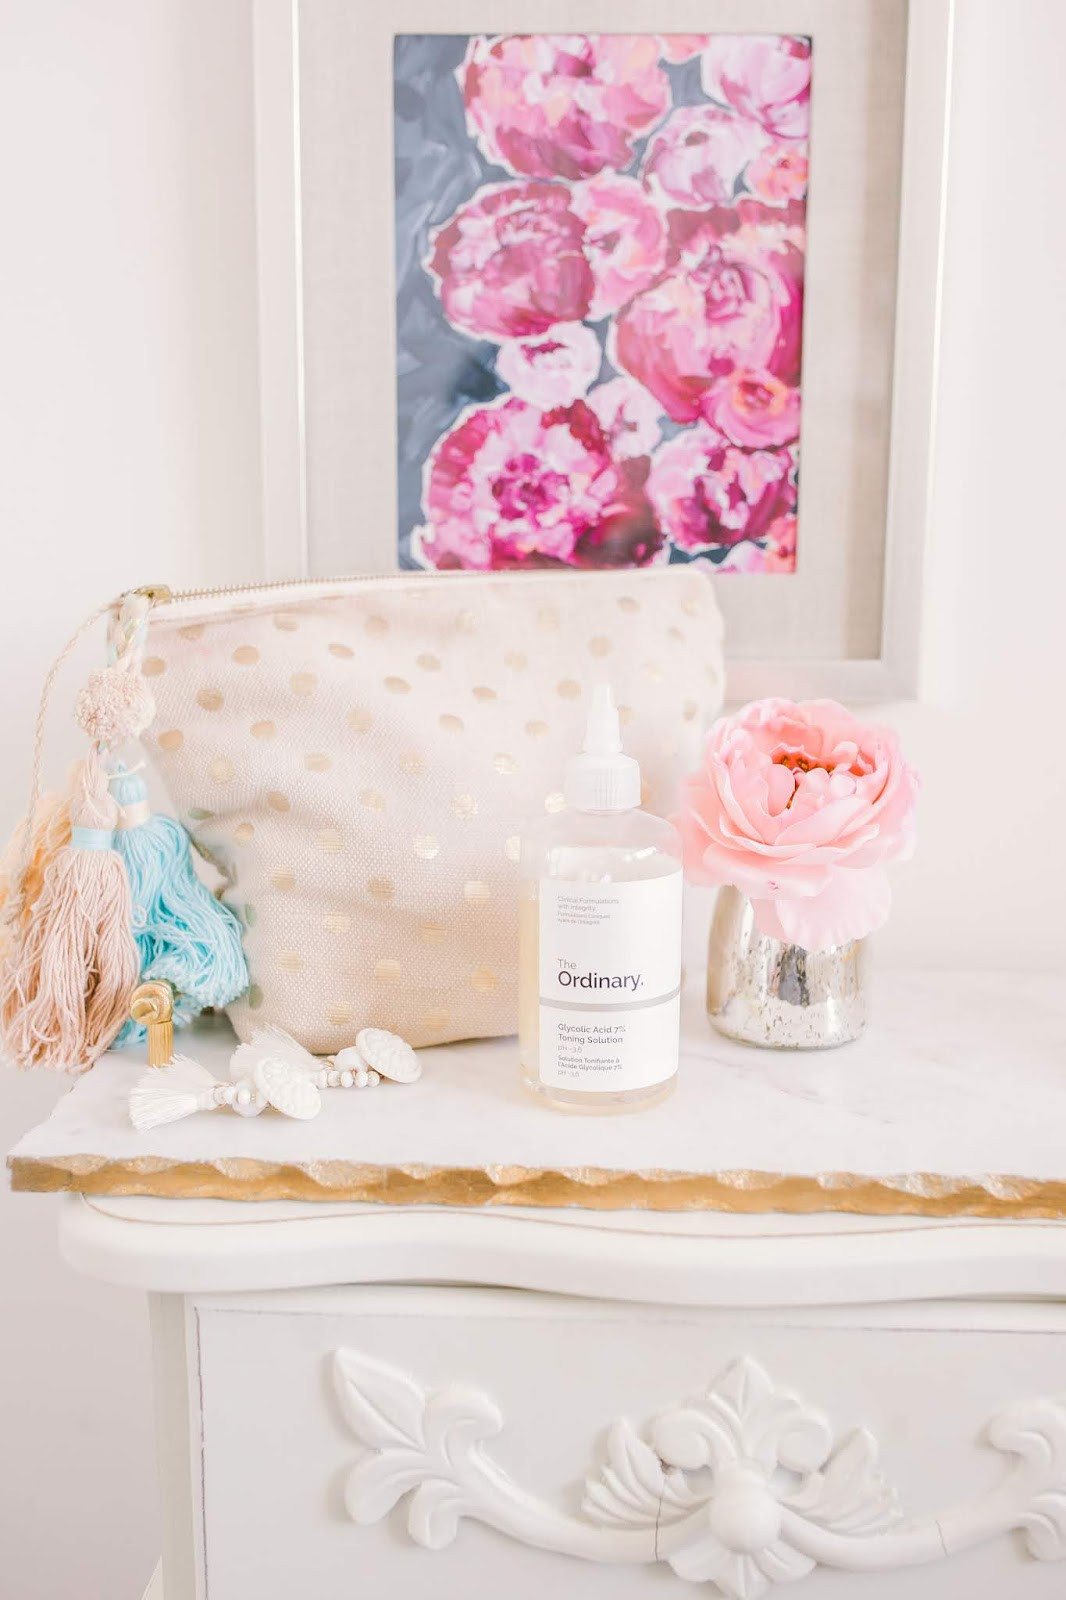 Bijuleni - 5  Products I use to Maintain My Skin Clear of Acne - Glycolic Acid 7% Toning Solution The Ordinary